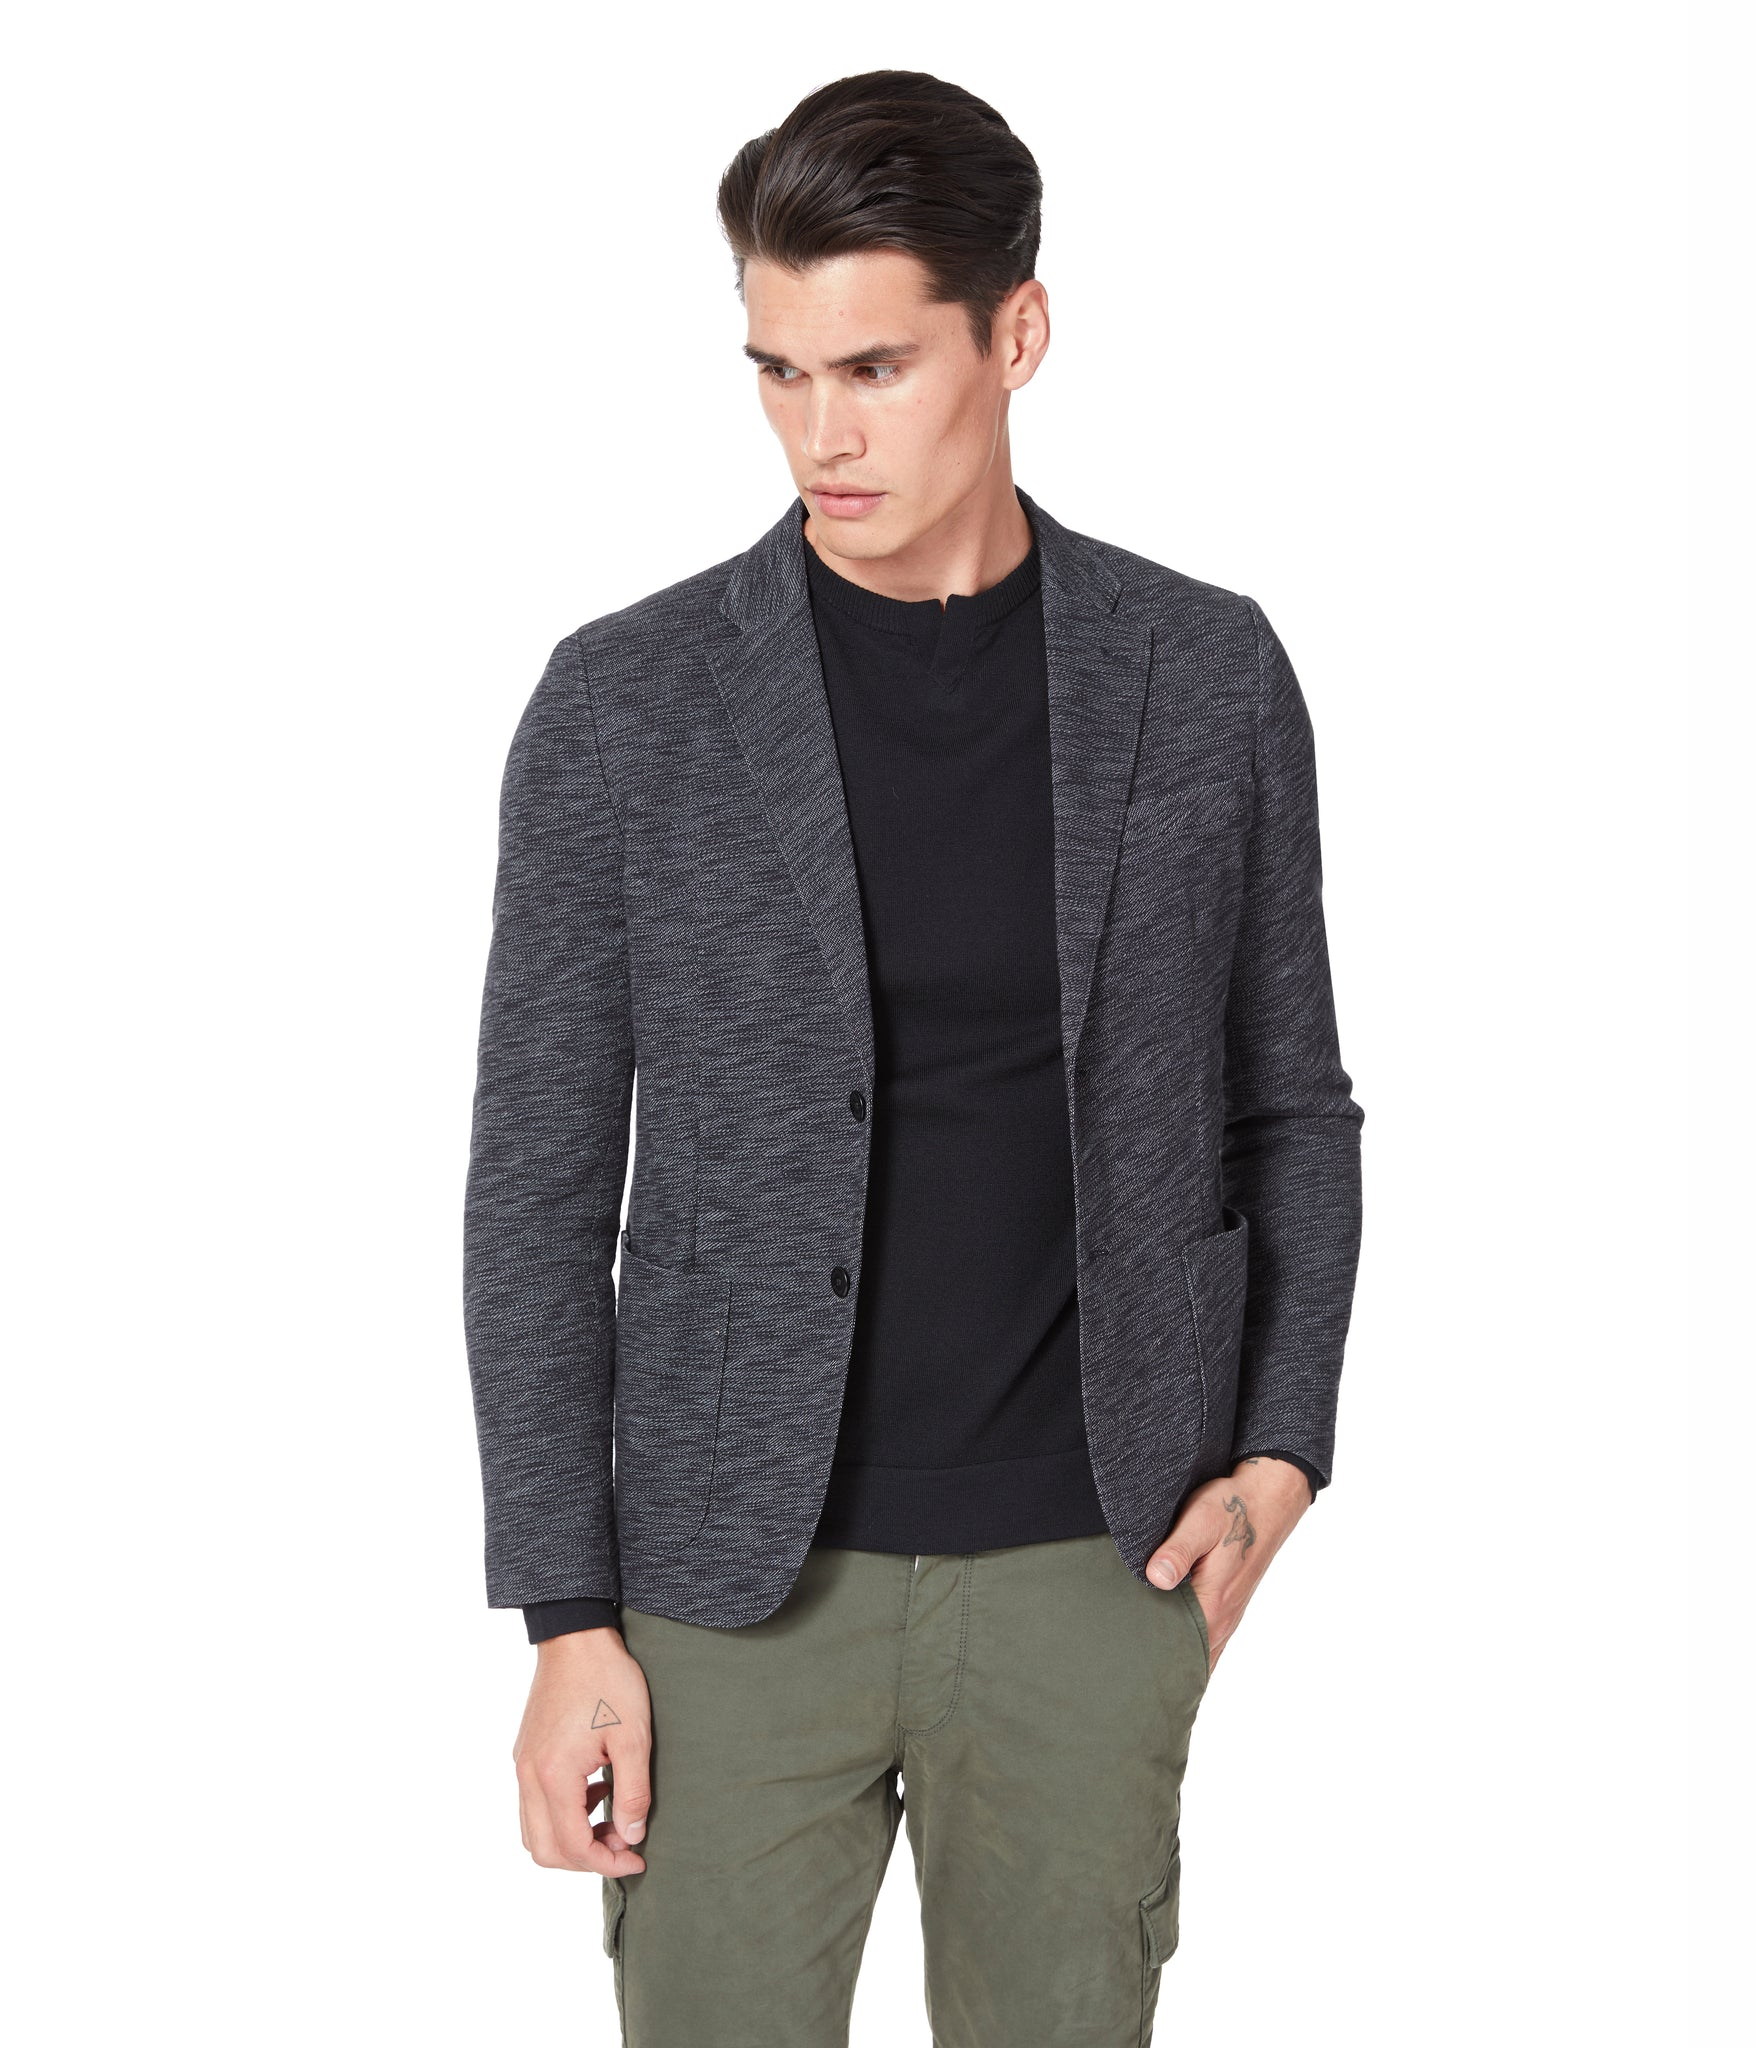 Vintage Twill Slub French Terry Soft Blazer - Black / Grey Heather